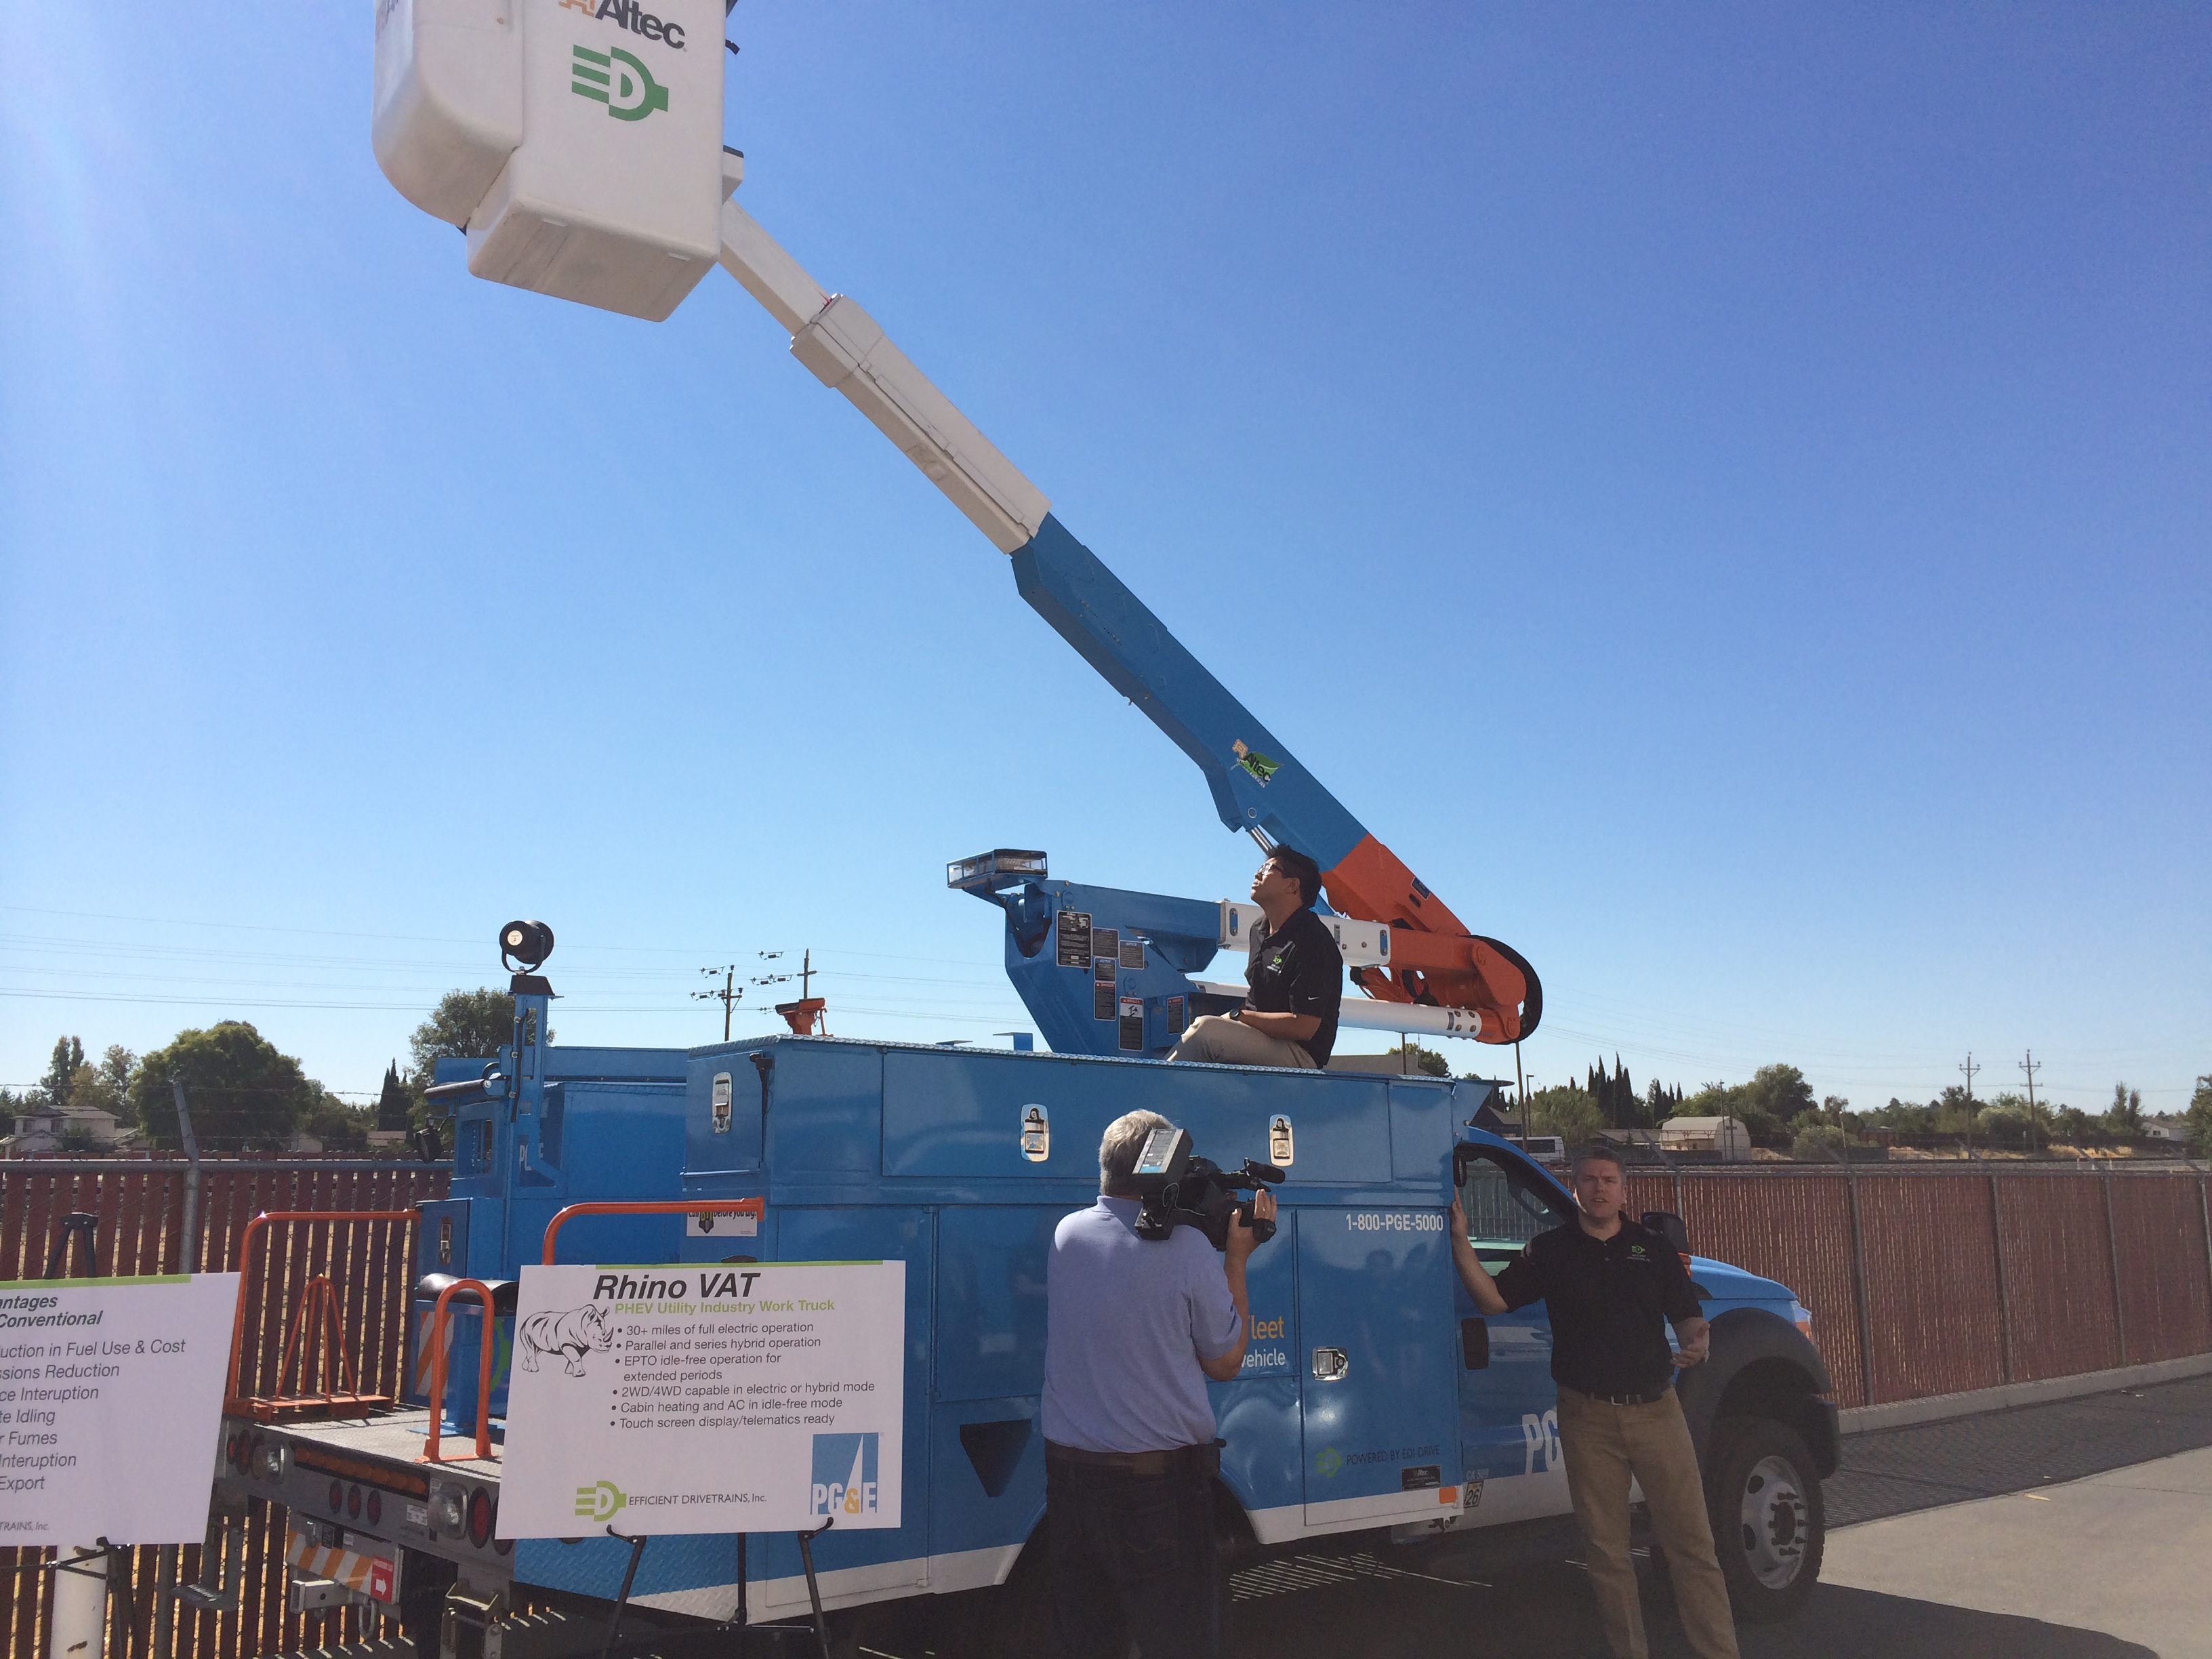 New Electric Utility Trucks Could Help Reduce Blackouts